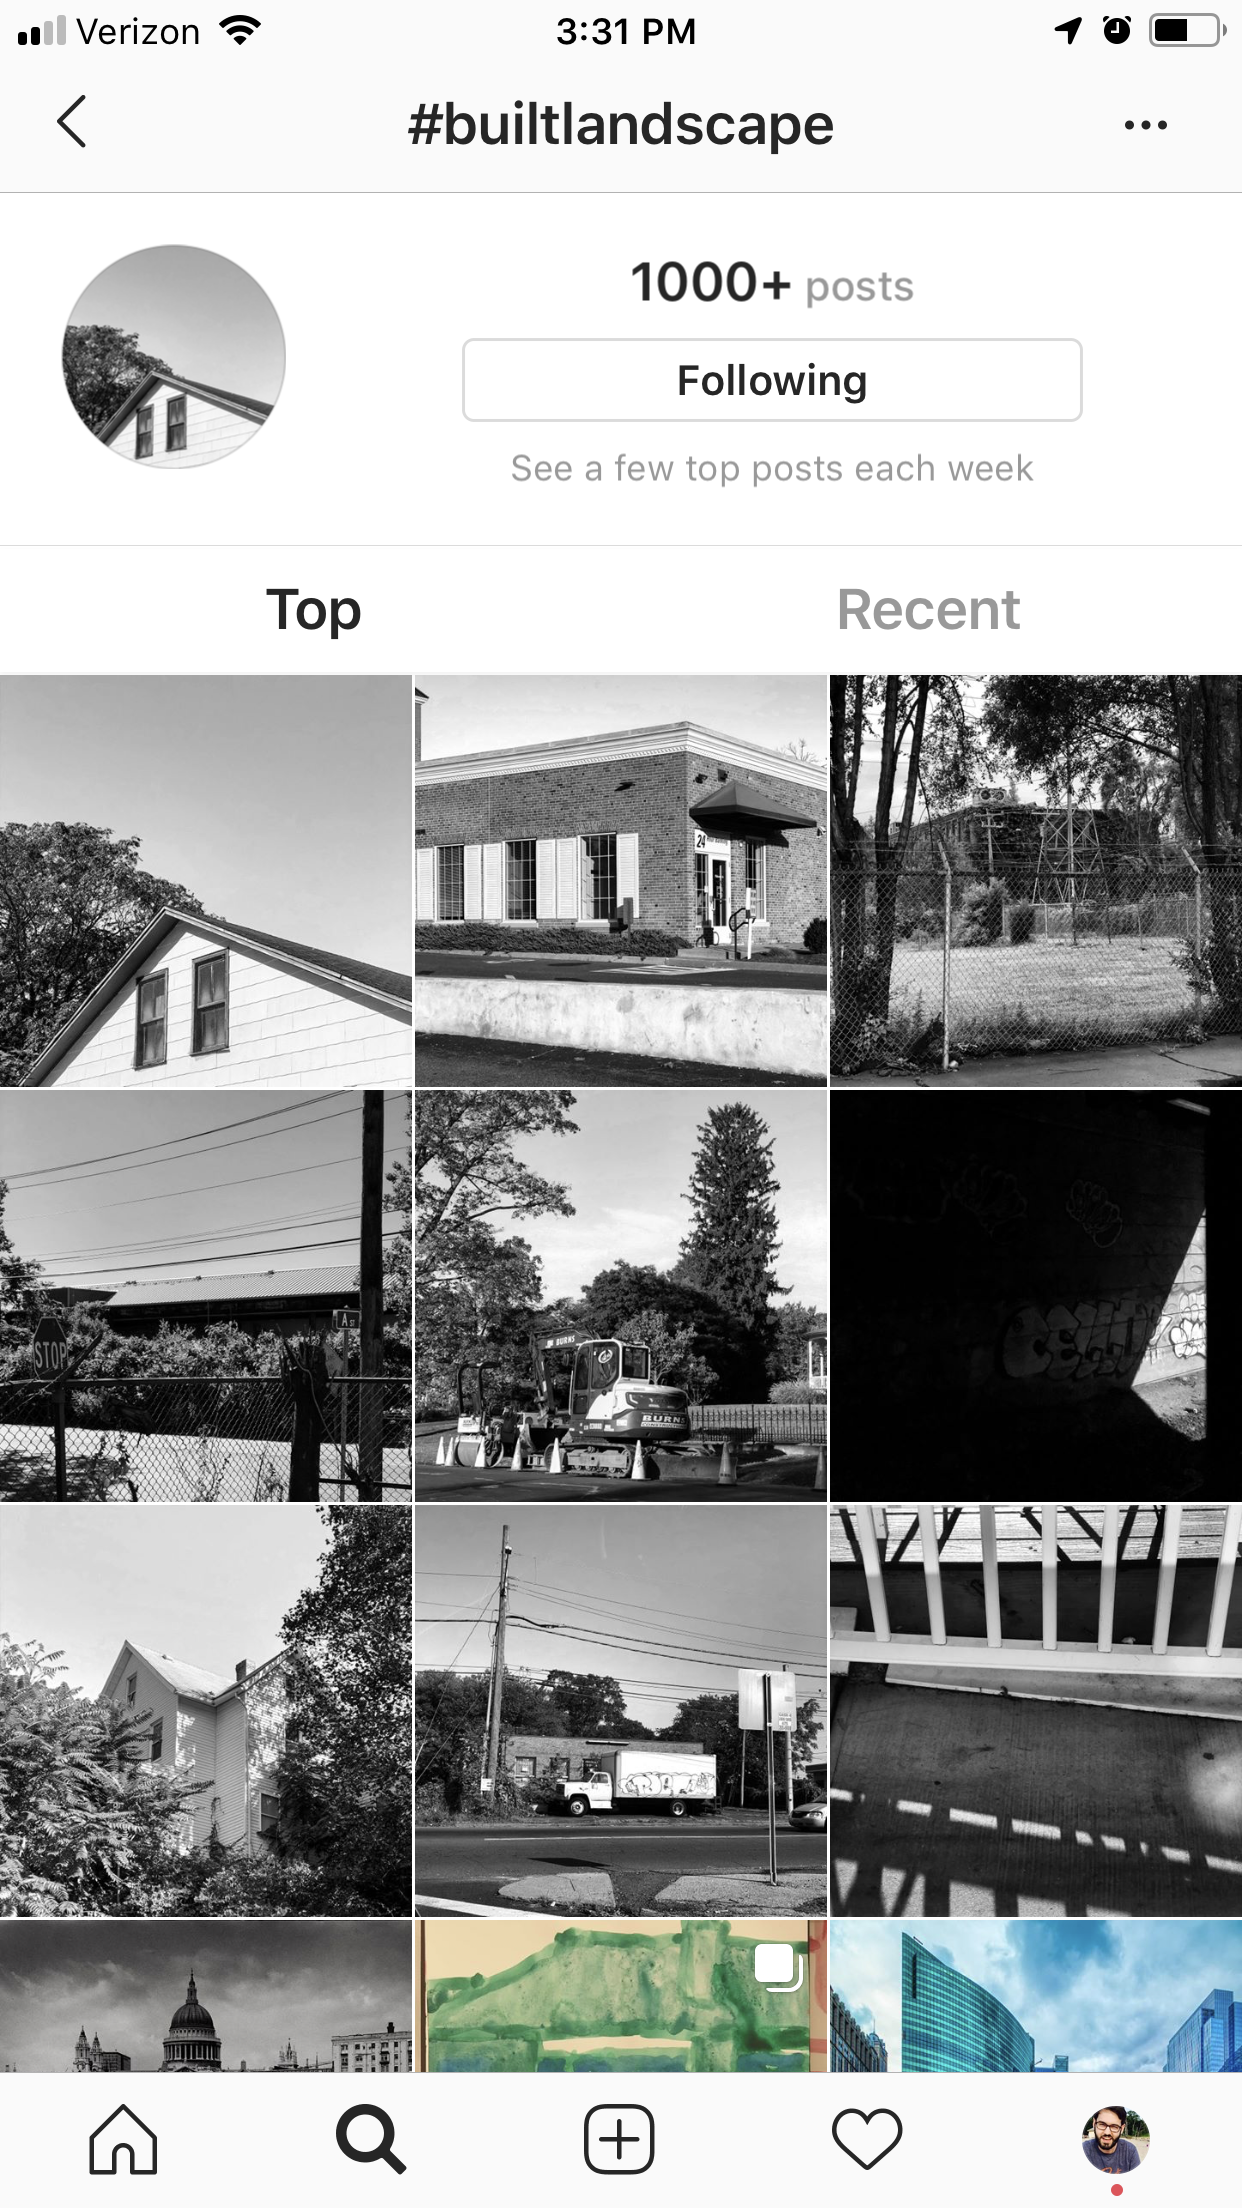 I have personally been using  #builtlandscape  for a while now and It's interesting to see how other people have used it as well. Also kind of feels nice to have hashtag that is mainly my posts.